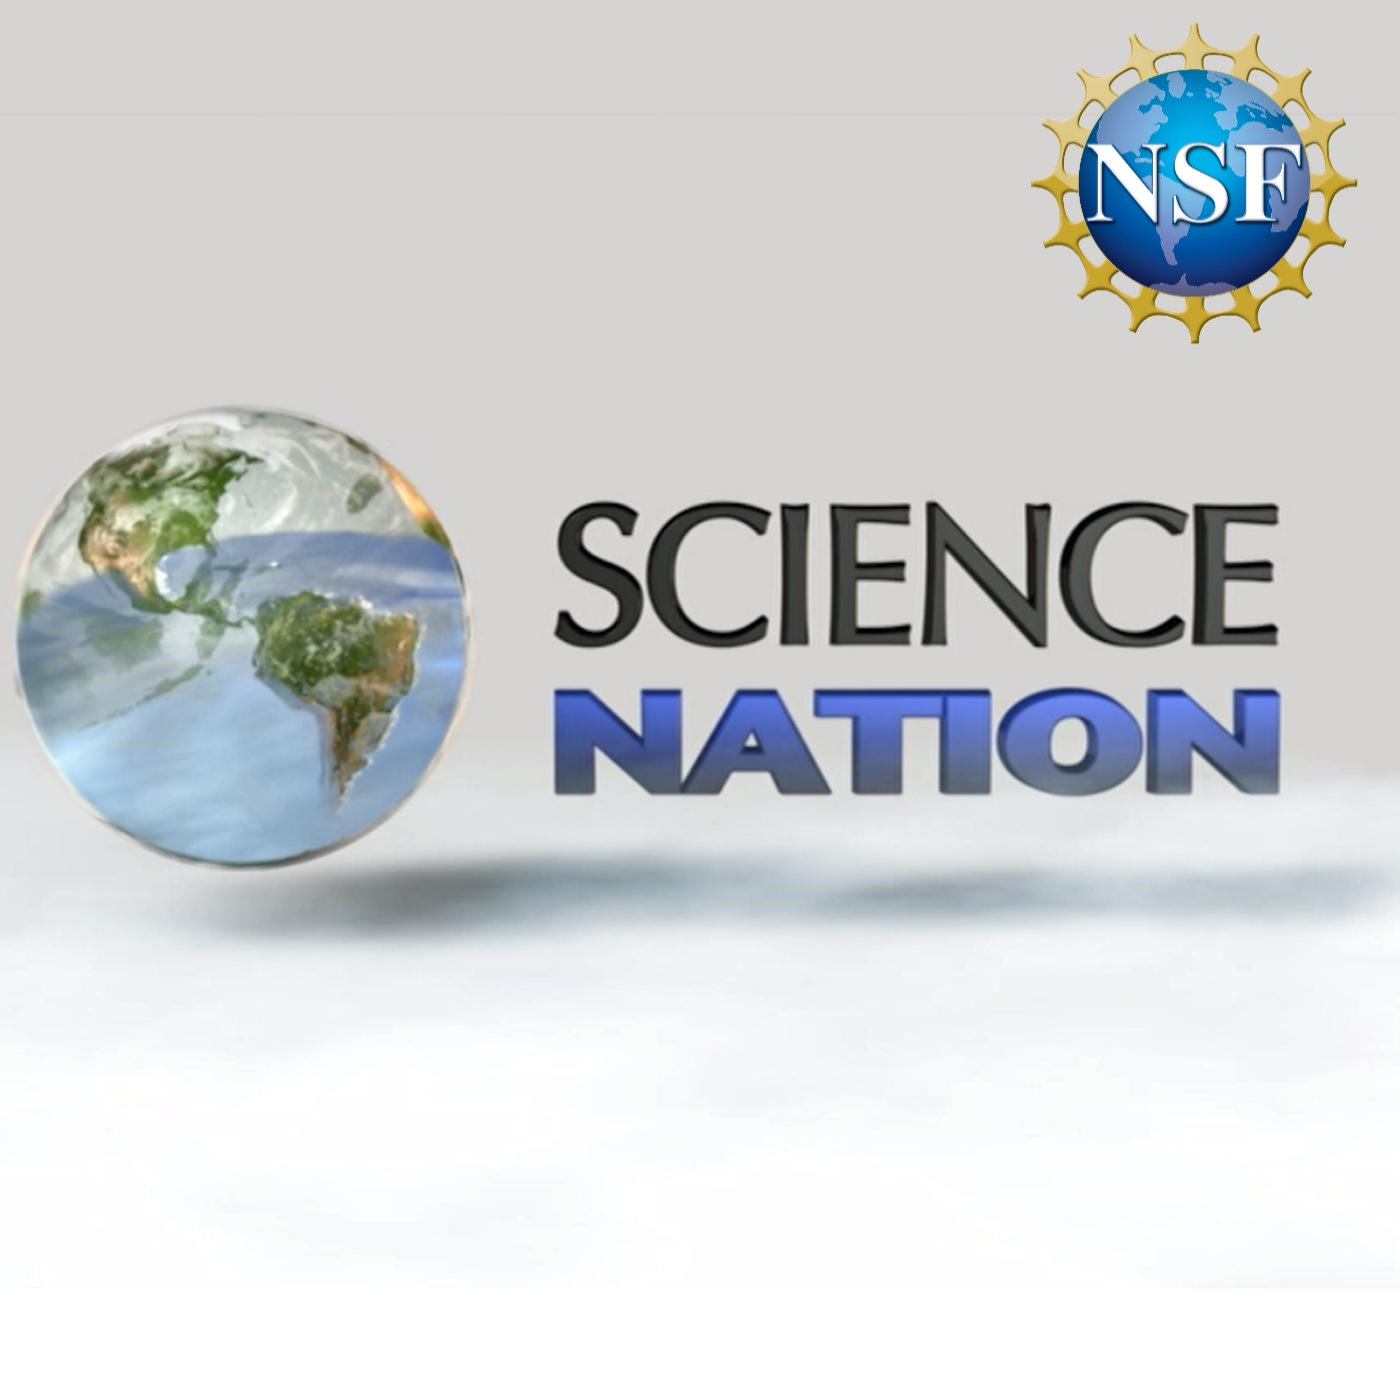 Science Nation